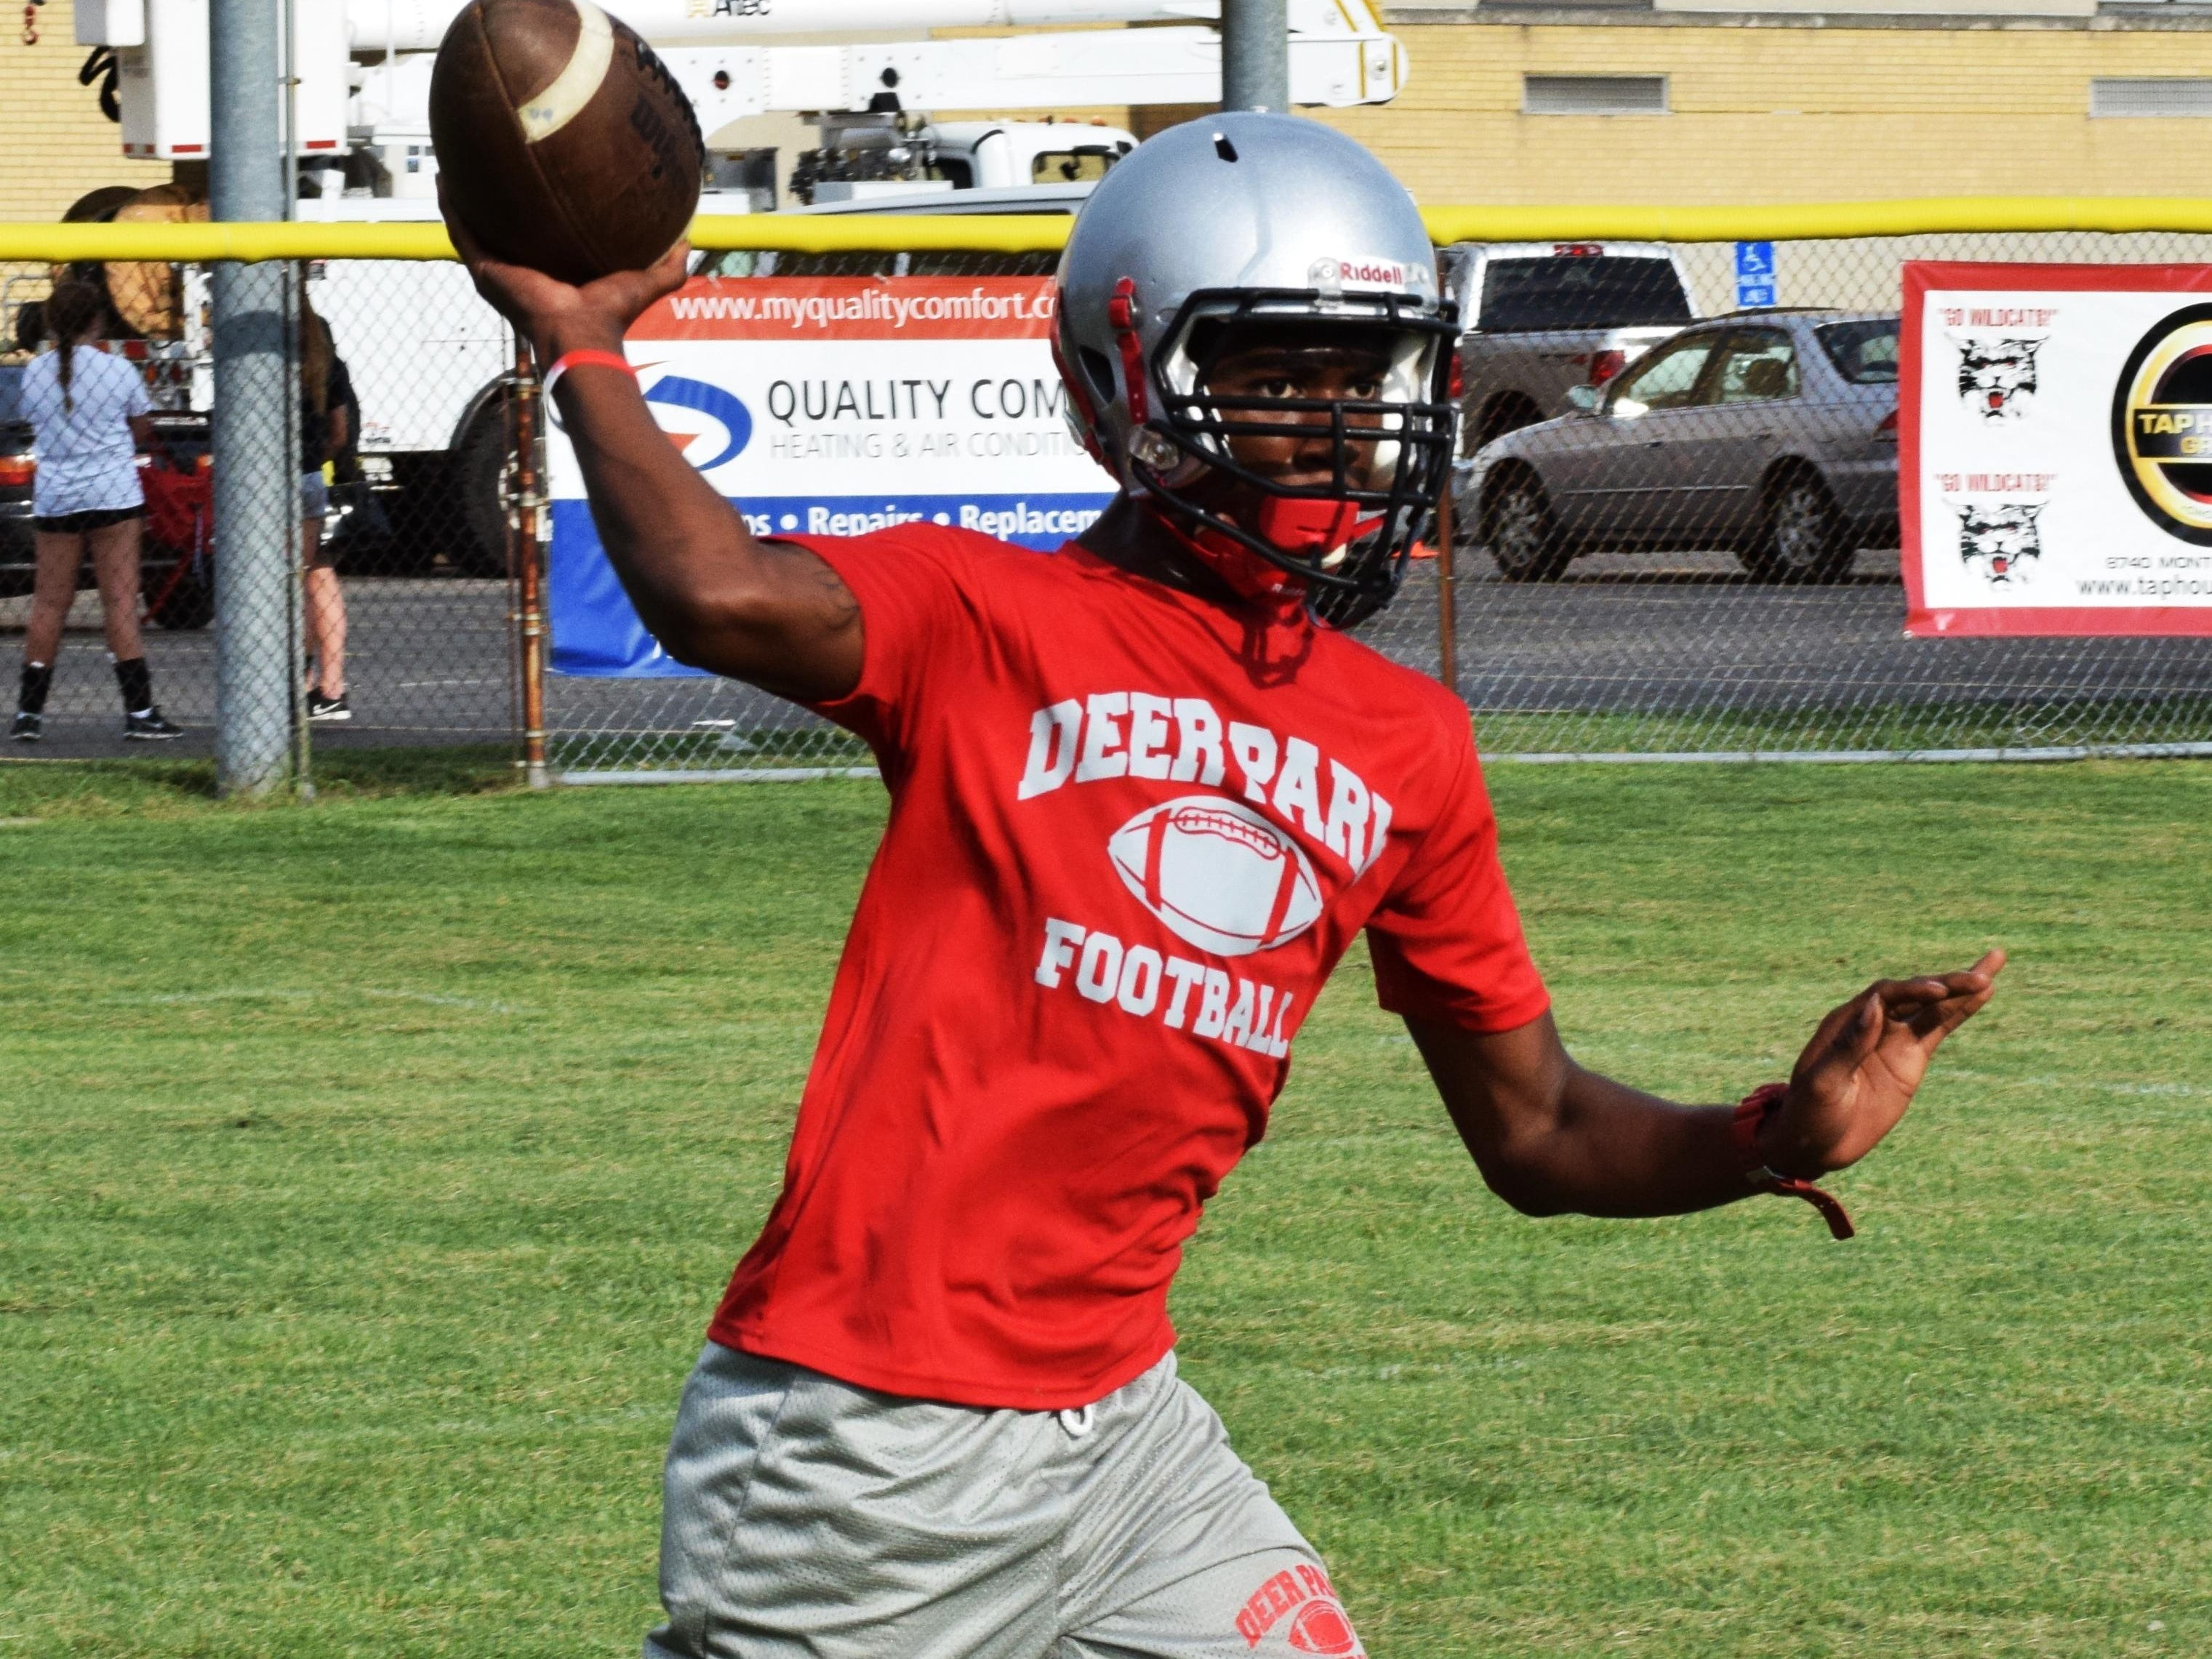 Deer Park quarterback Jordan Yelling looks to connect on a long passes in 2015 for the Wildcats.